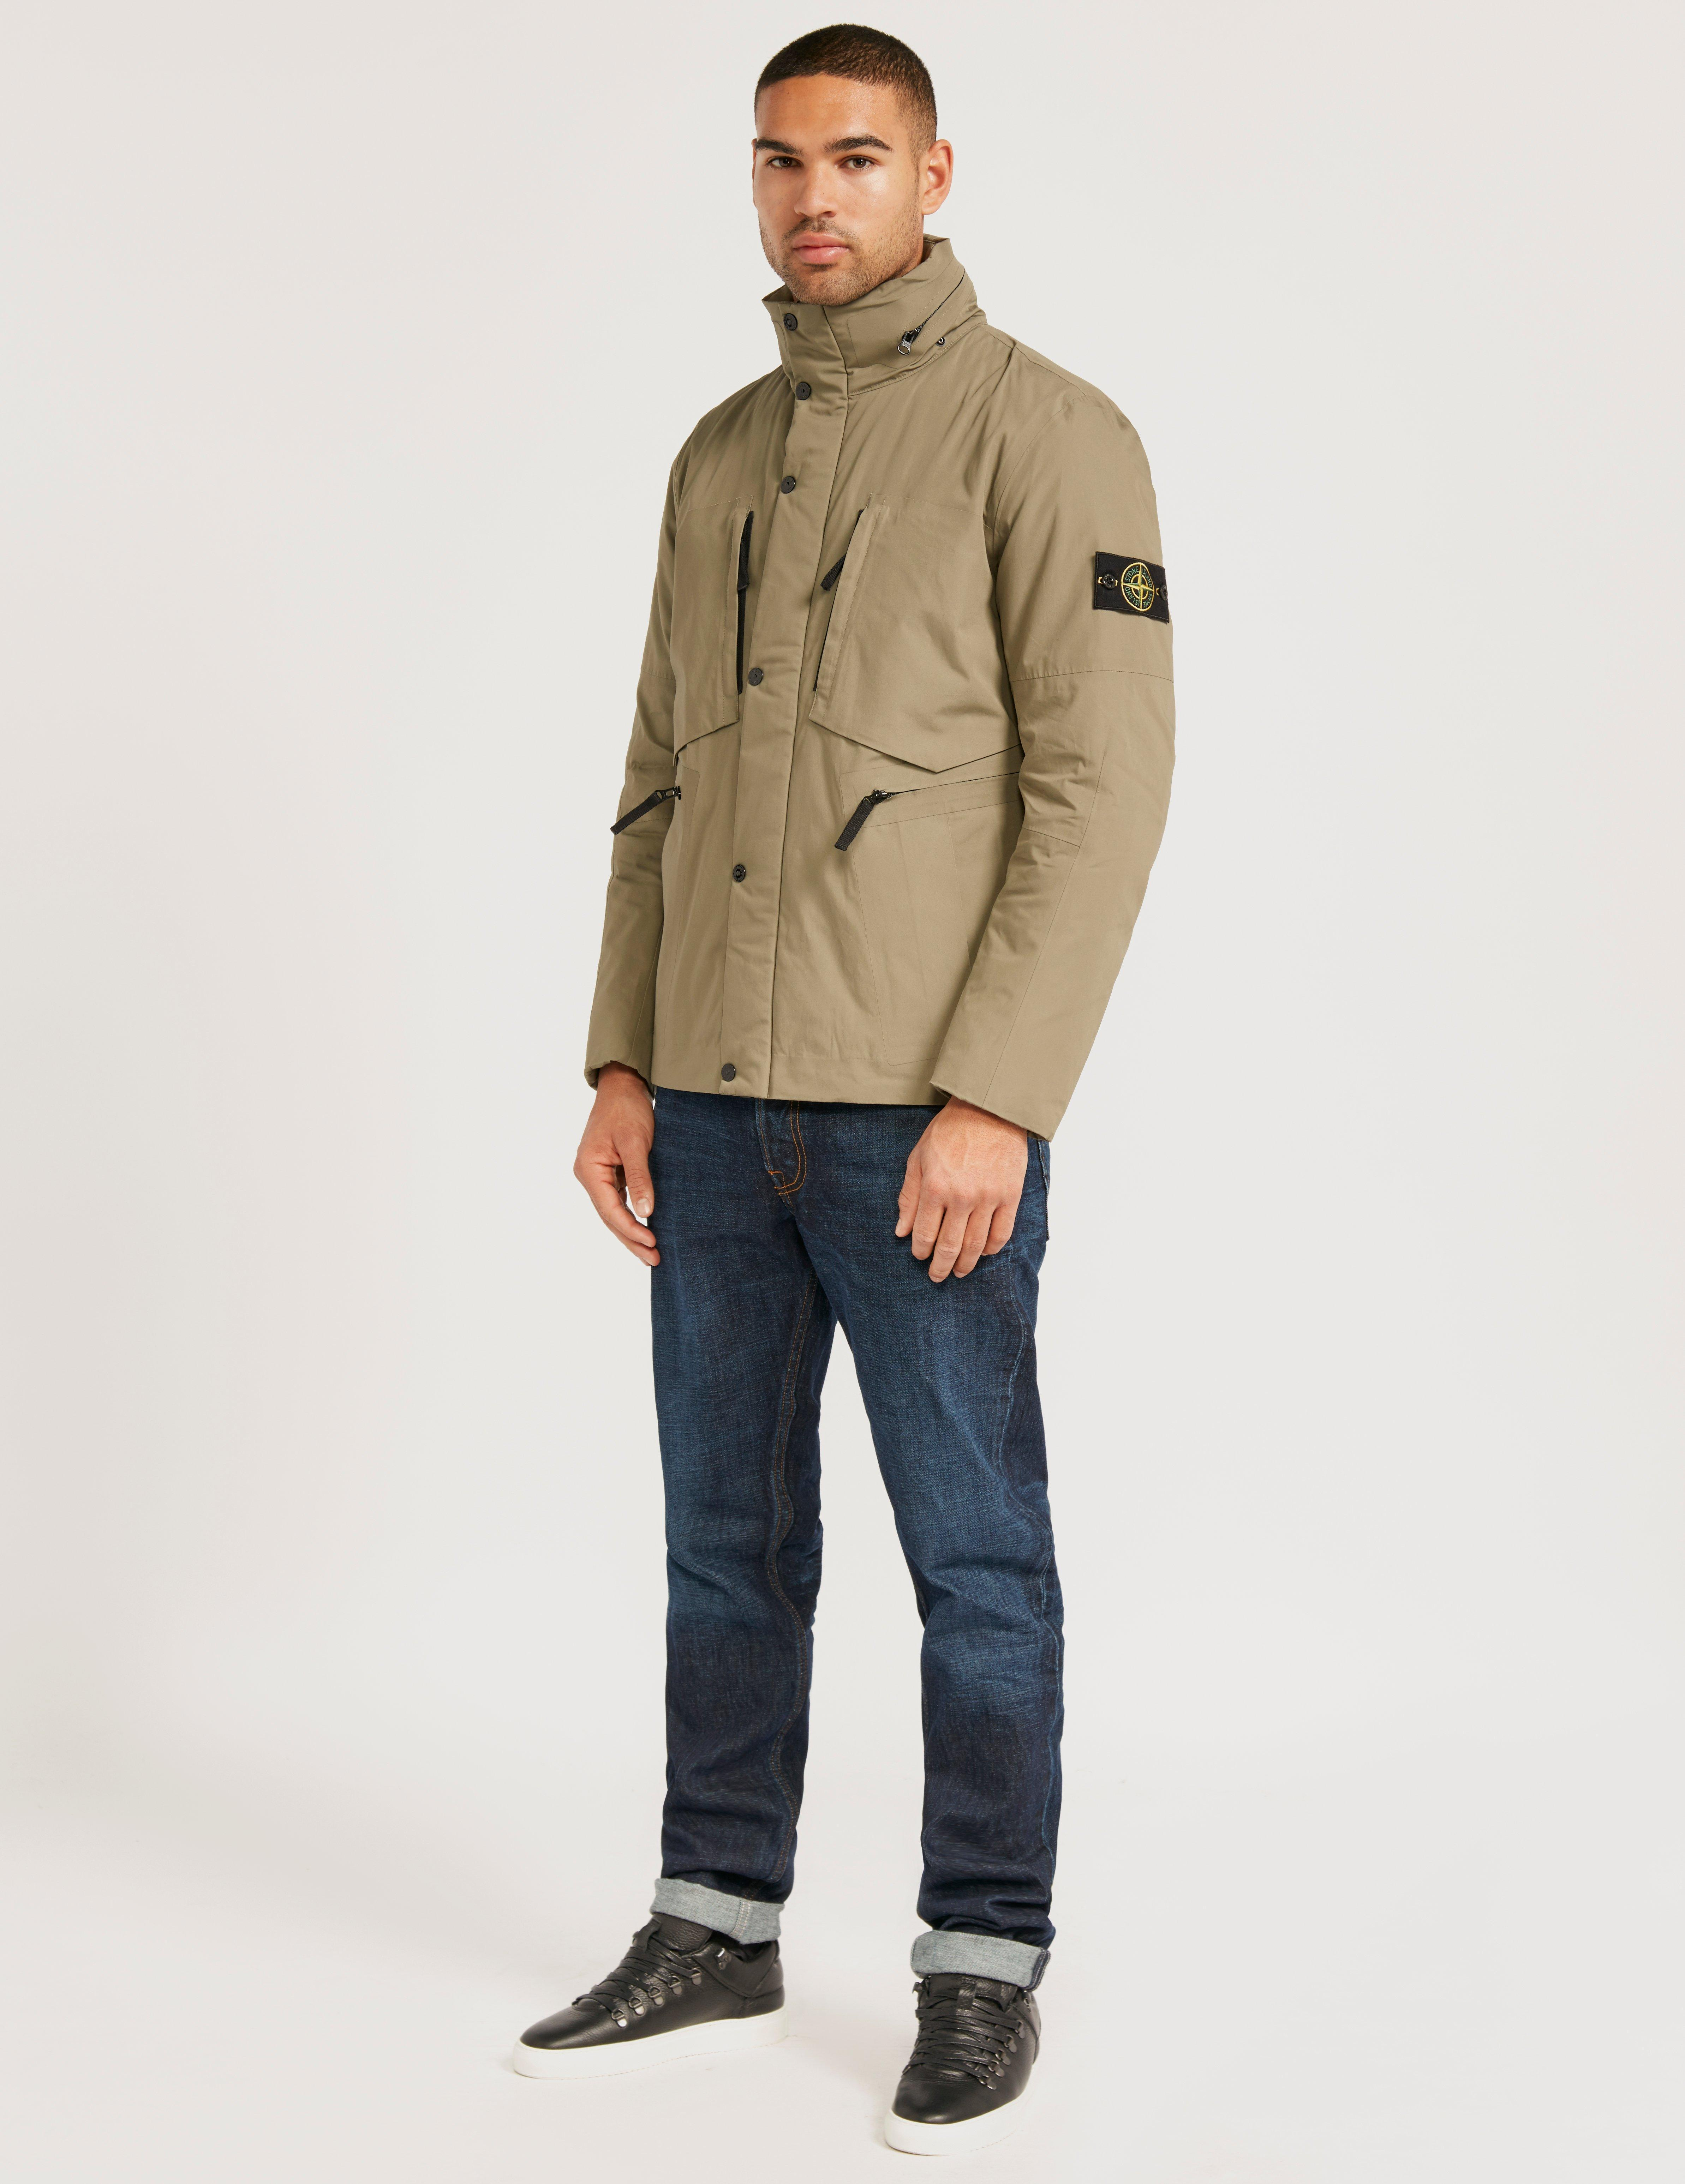 Stone Island Supima Jacket in Green for Men - Lyst